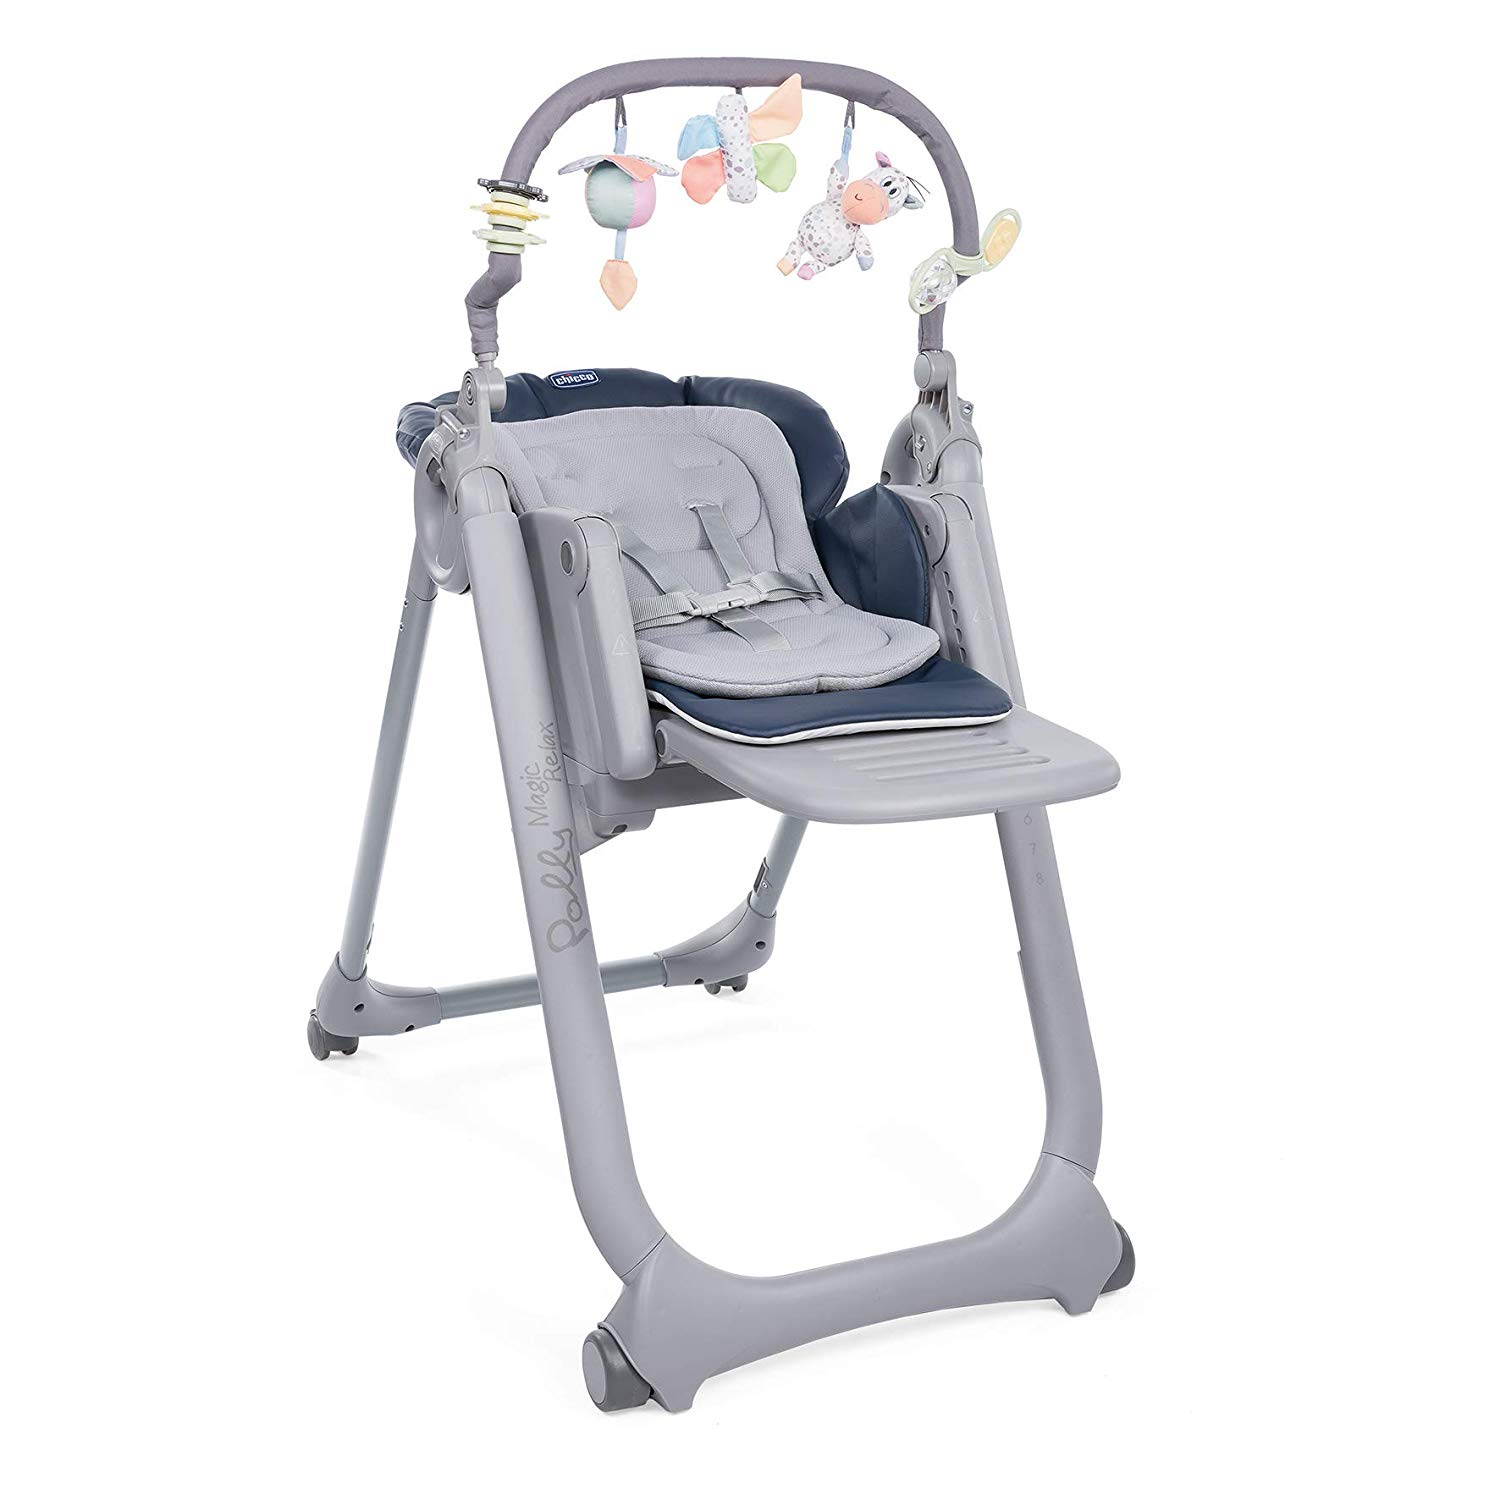 La chaise haute Chicco Polly Magic est une chaise haute 3 en 1.